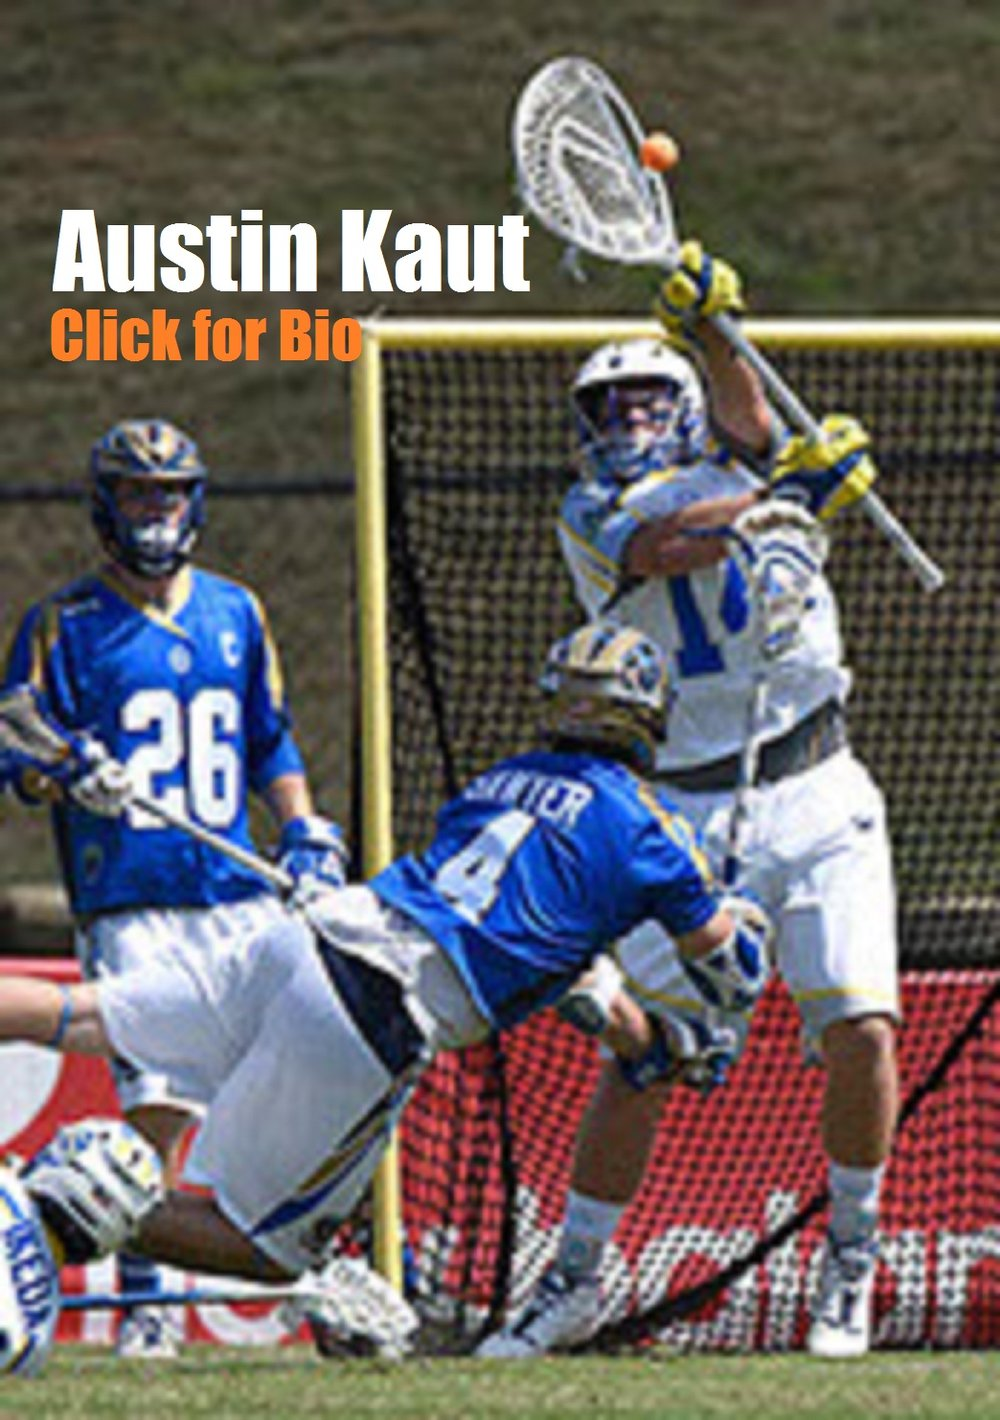 Austin Kaut    Member of the MLL Florida Launch    Ensign C. Markland Kelly, Jr. Award 2013 (Nation's Best Goalie)    4-Time All-CAA First Team 2011-2014    2-Time All-State 2009 and 2010    Penn State University Men's Lacrosse Team Captain 2013-2014    USILA First Team All-American 2013    2-Time All-State 2009 and 2010/ High School All-American 2010